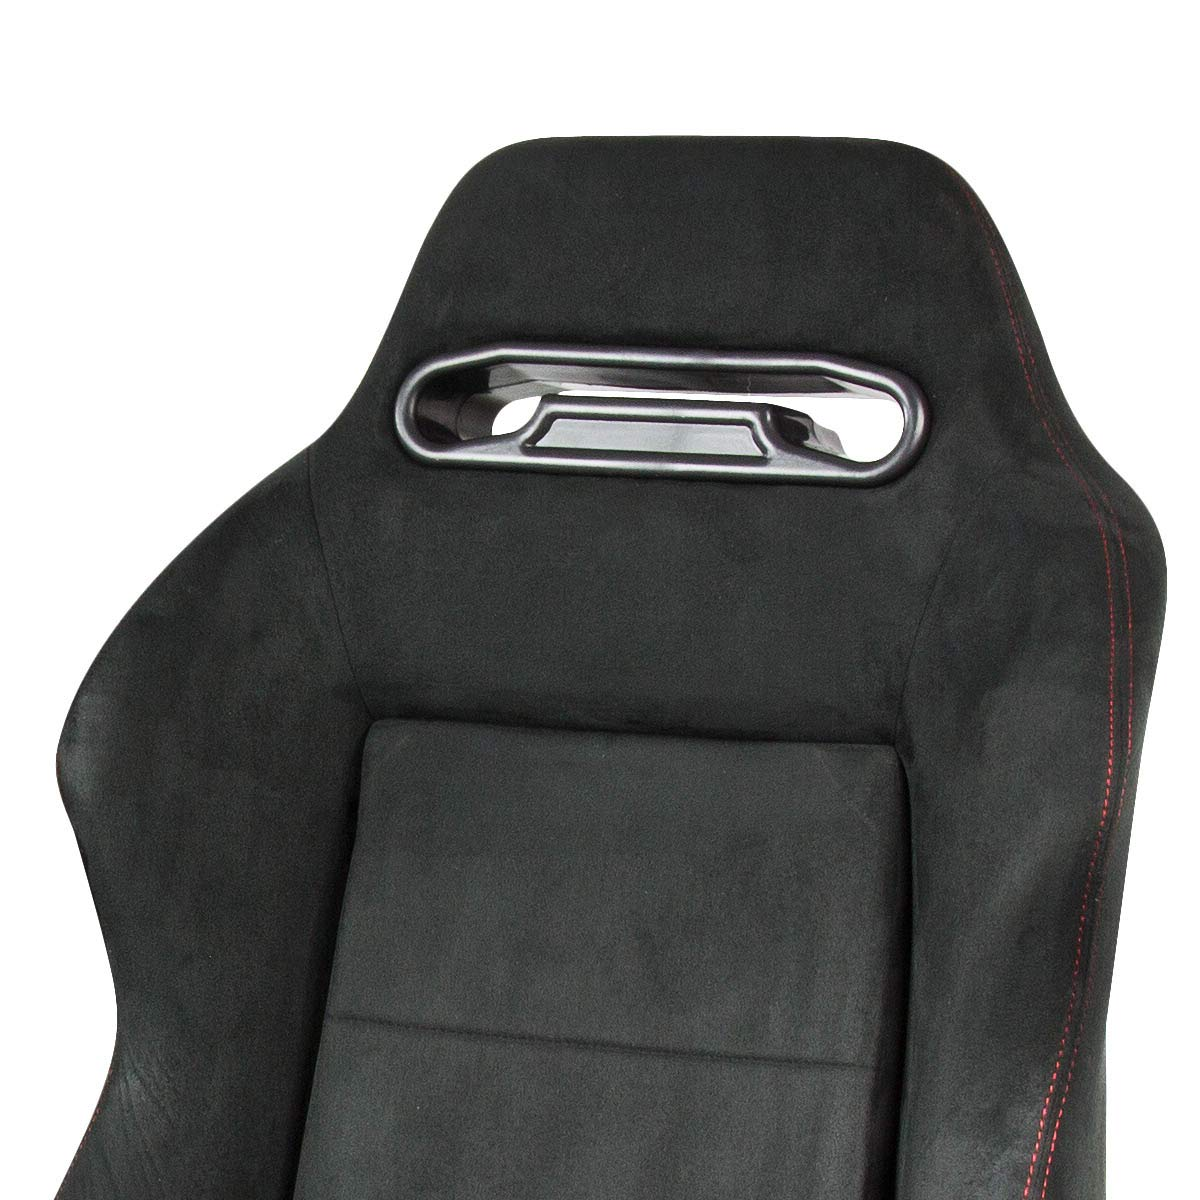 Pair of RSTRSBK Racing Seats+Mounting Bracket for Chevy Camaro//Pontiac Firebird F-Body